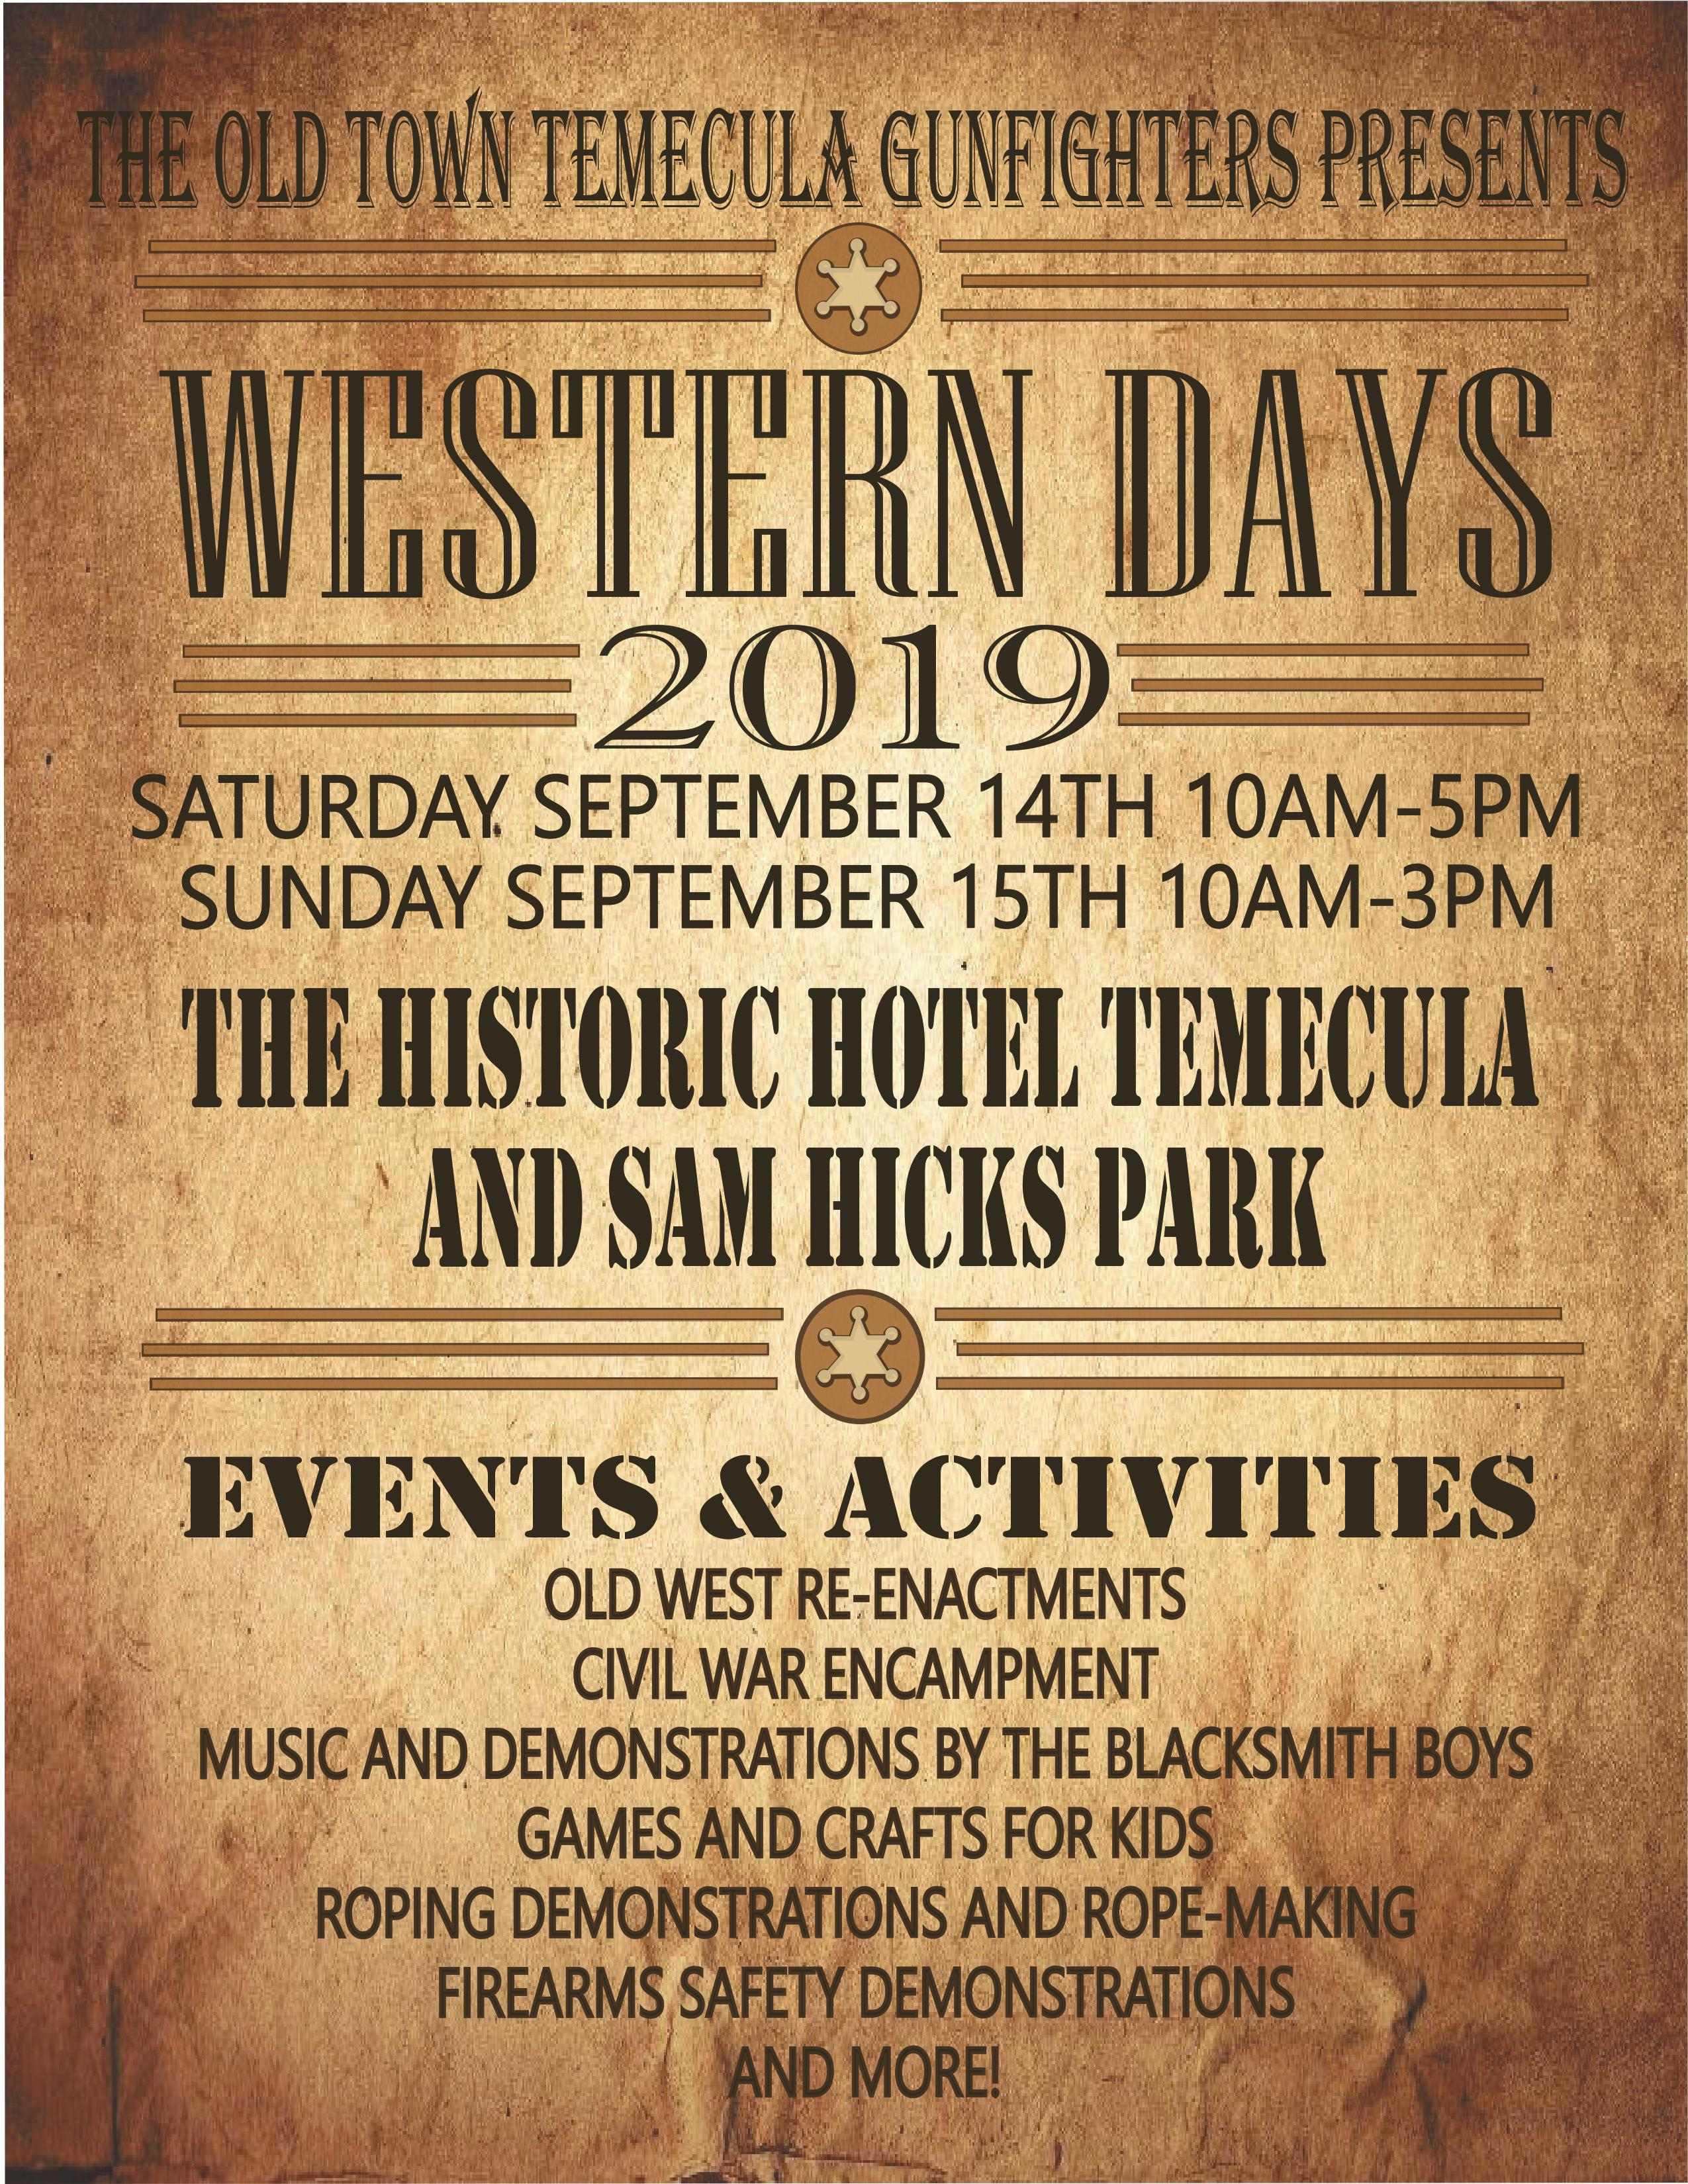 The Old Town Temecula Gun Fighters - Western Days @ The Historic Hotel Temecula and Sam Hicks Park